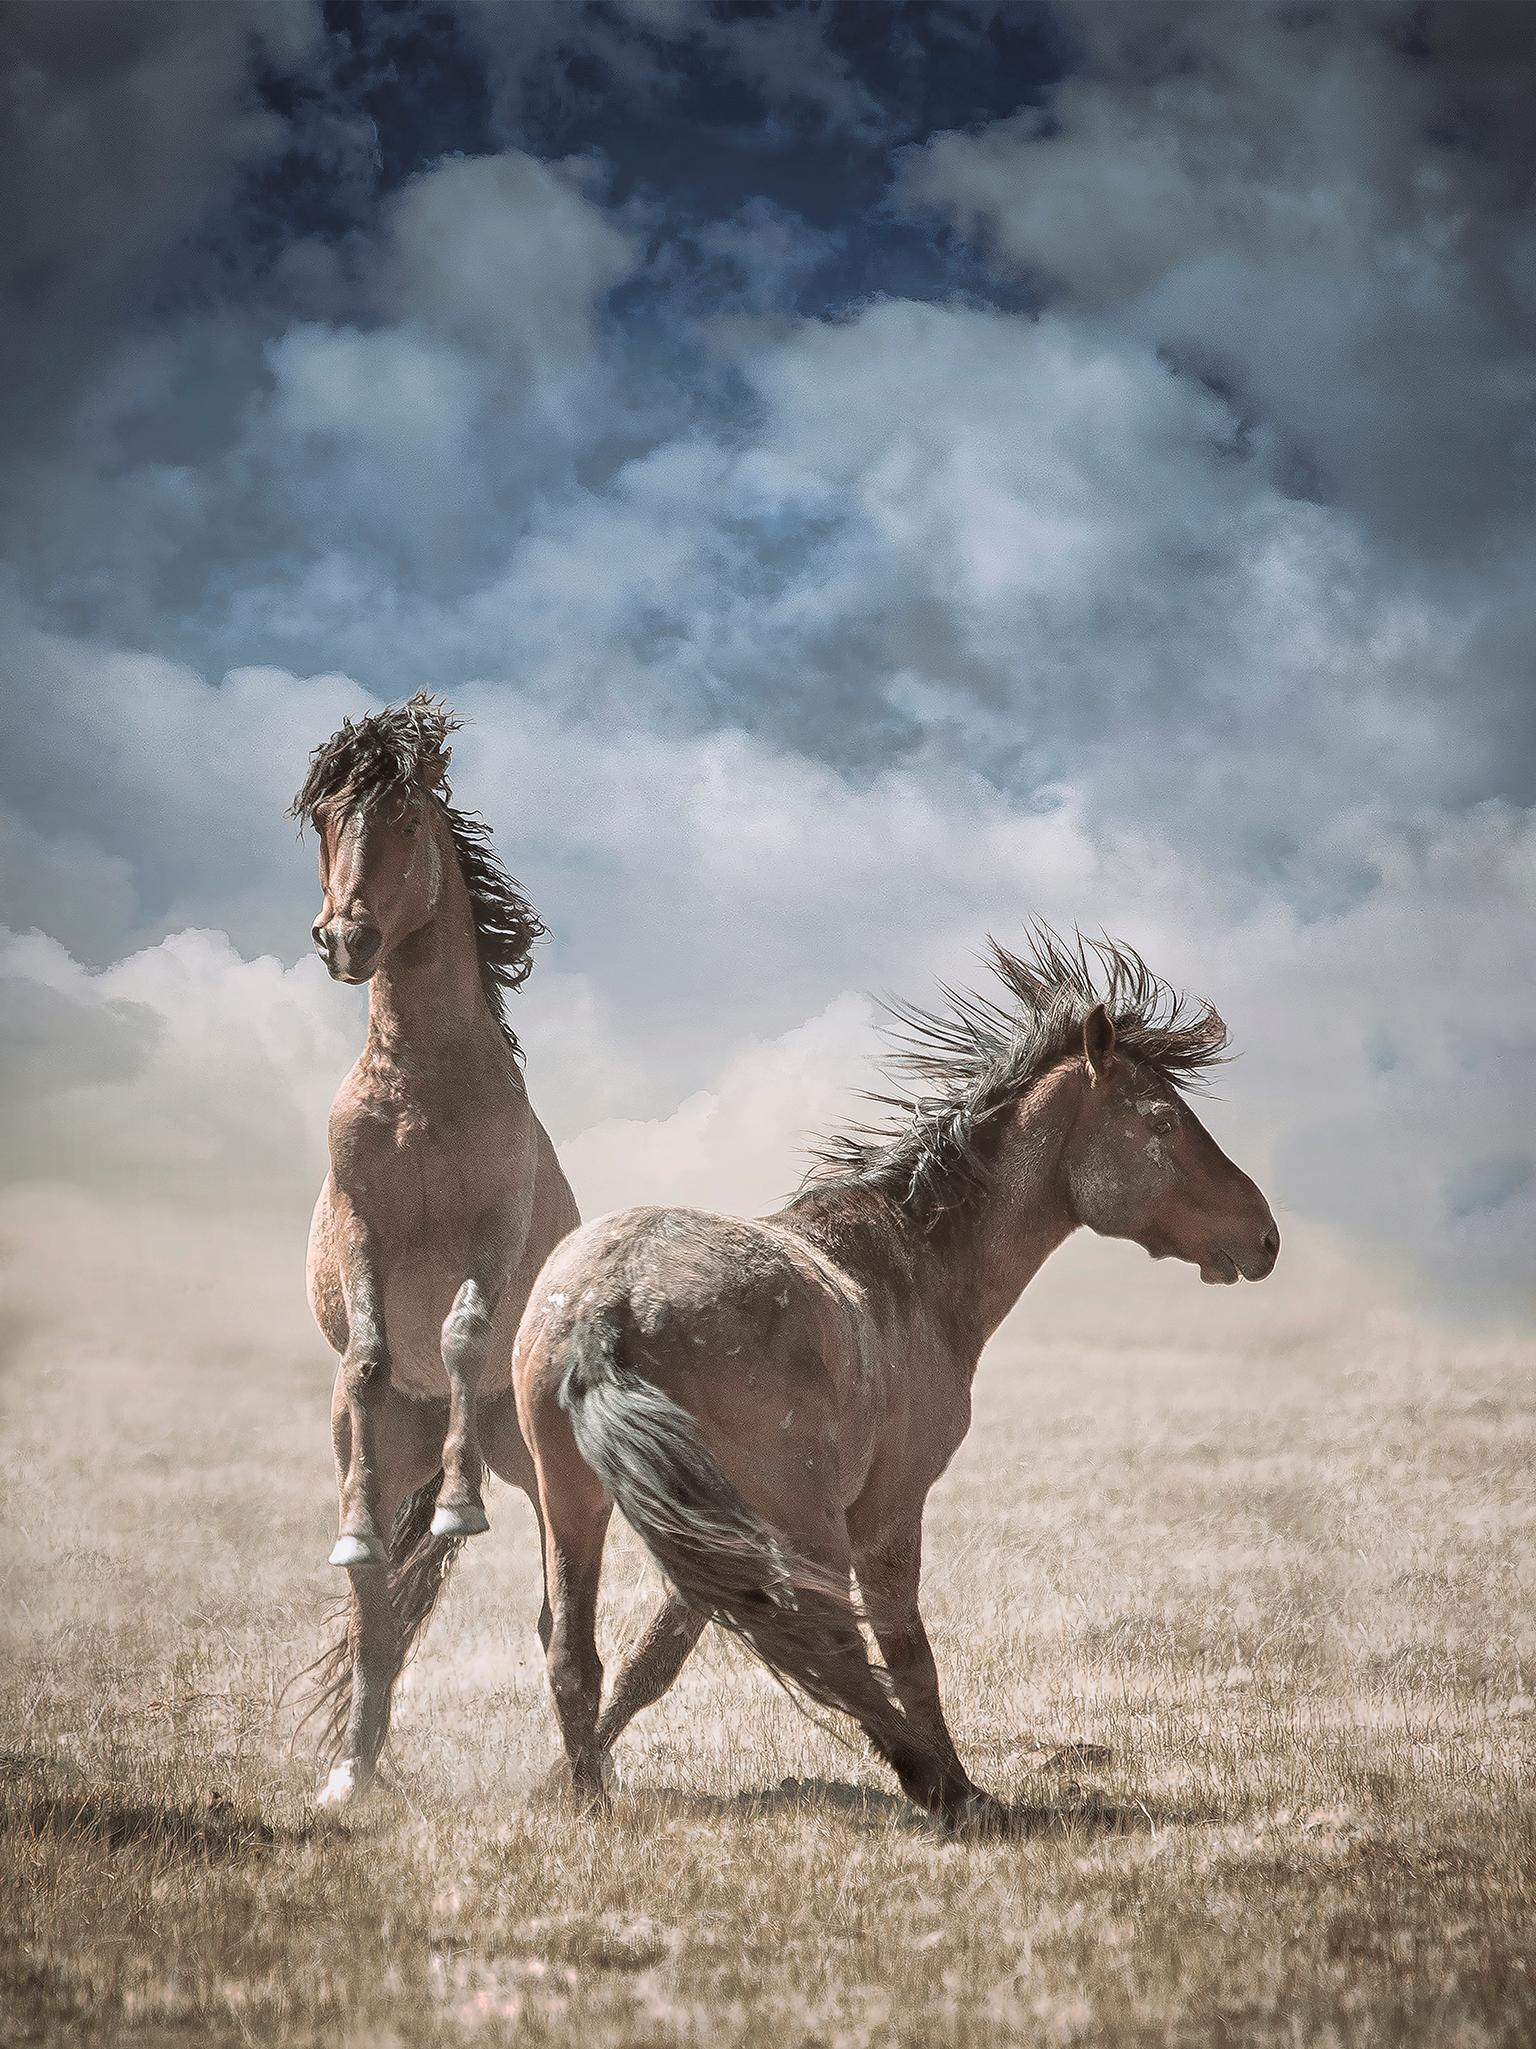 Shane Russeck Wonder Horses 32 X 40 Wild Horses Wild Mustang Photography For Sale At 1stdibs